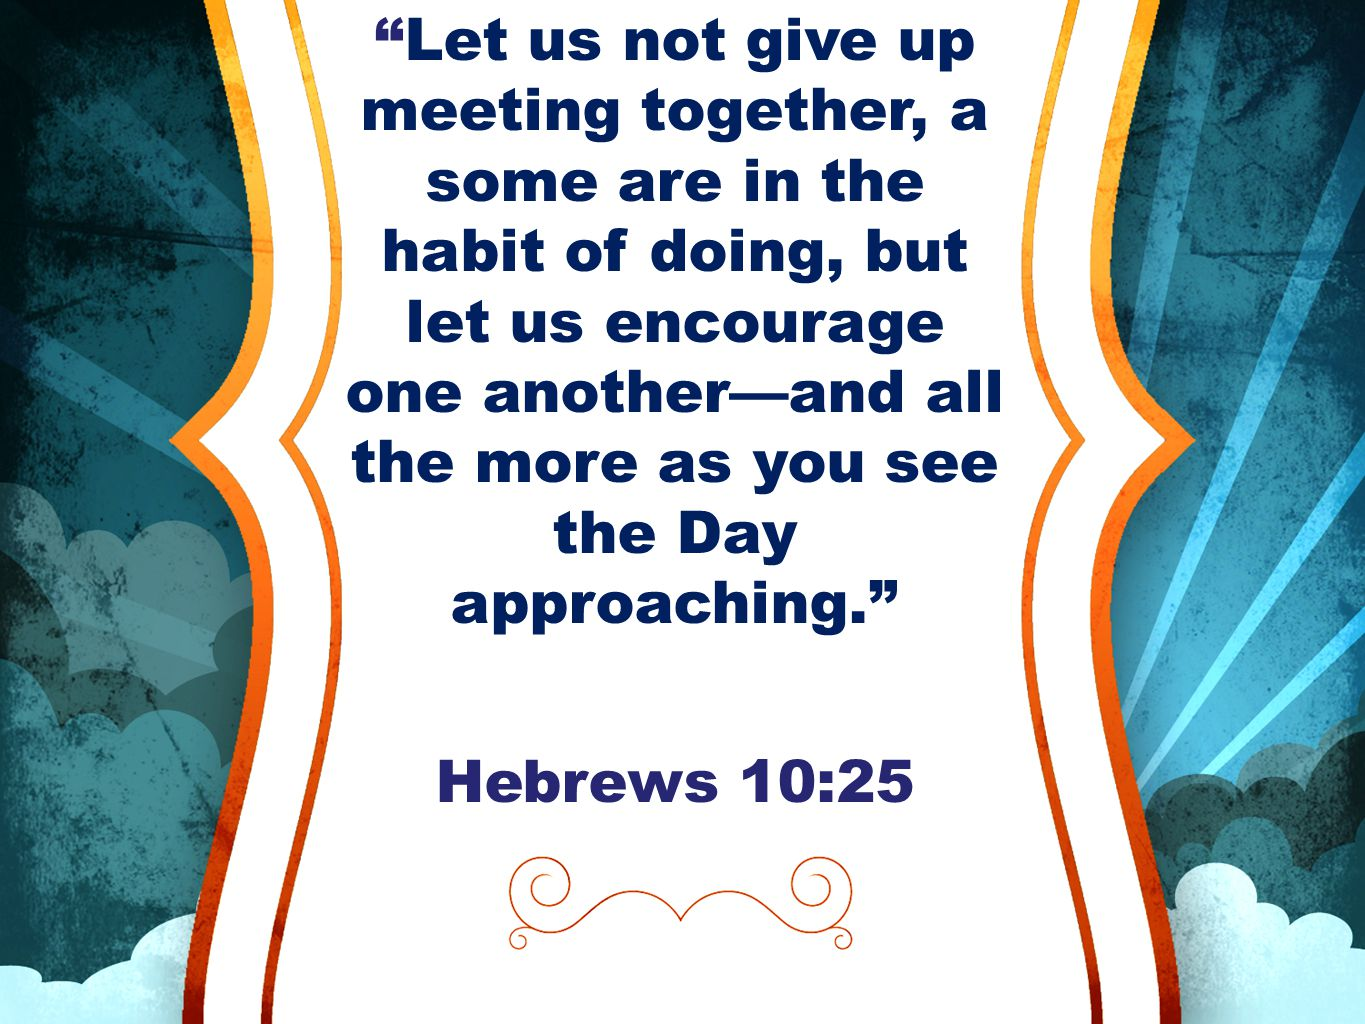 """""""Let us not give up meeting together, a some are in the habit of doing, but let us encourage one another—and all the more as you see the Day approachi"""